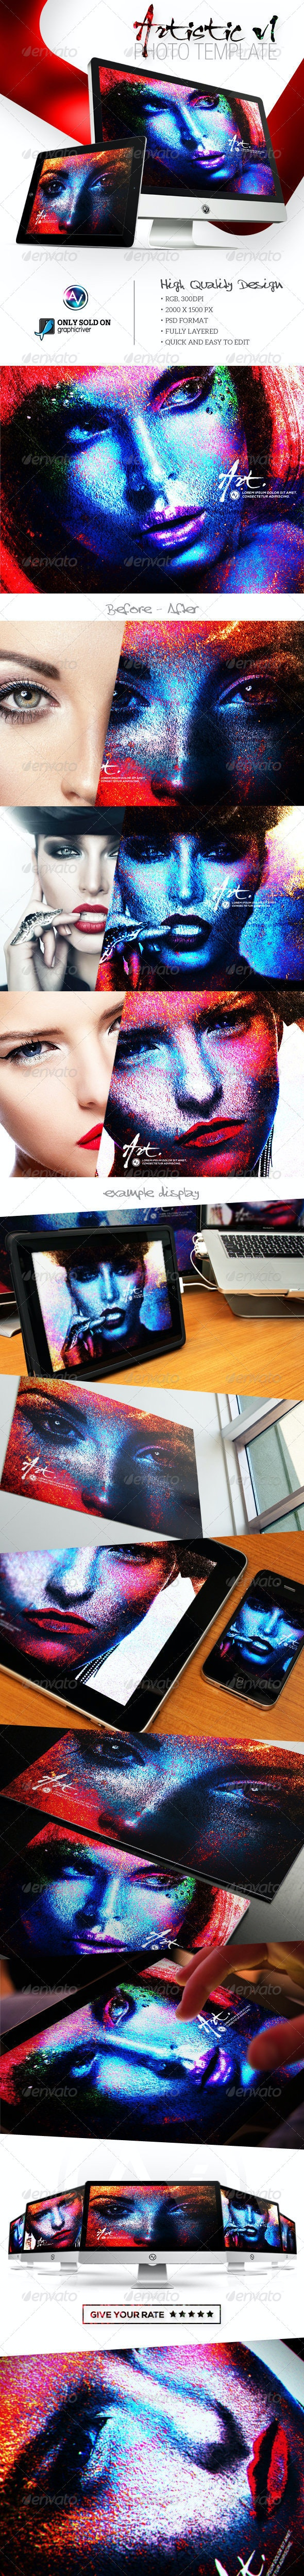 Artistic Photo Template V1 - Artistic Photo Templates